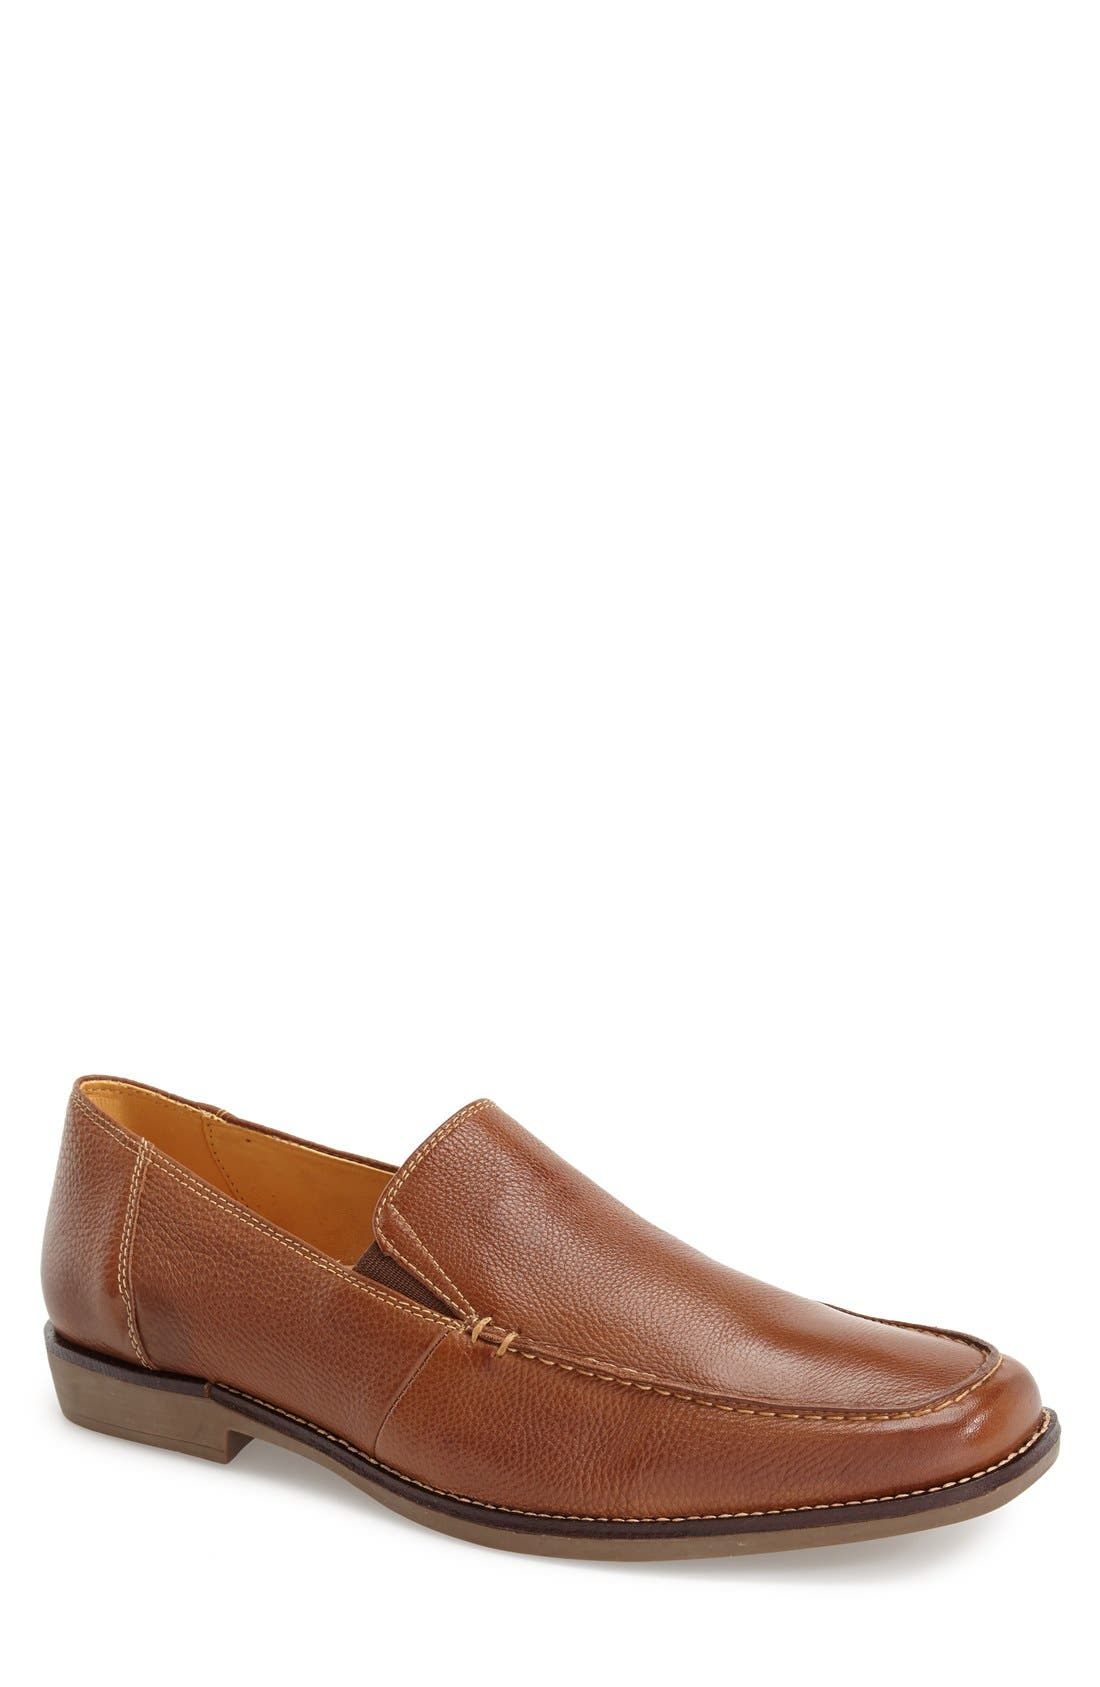 'Easy' Leather Venetian Loafer,                         Main,                         color, COGNAC